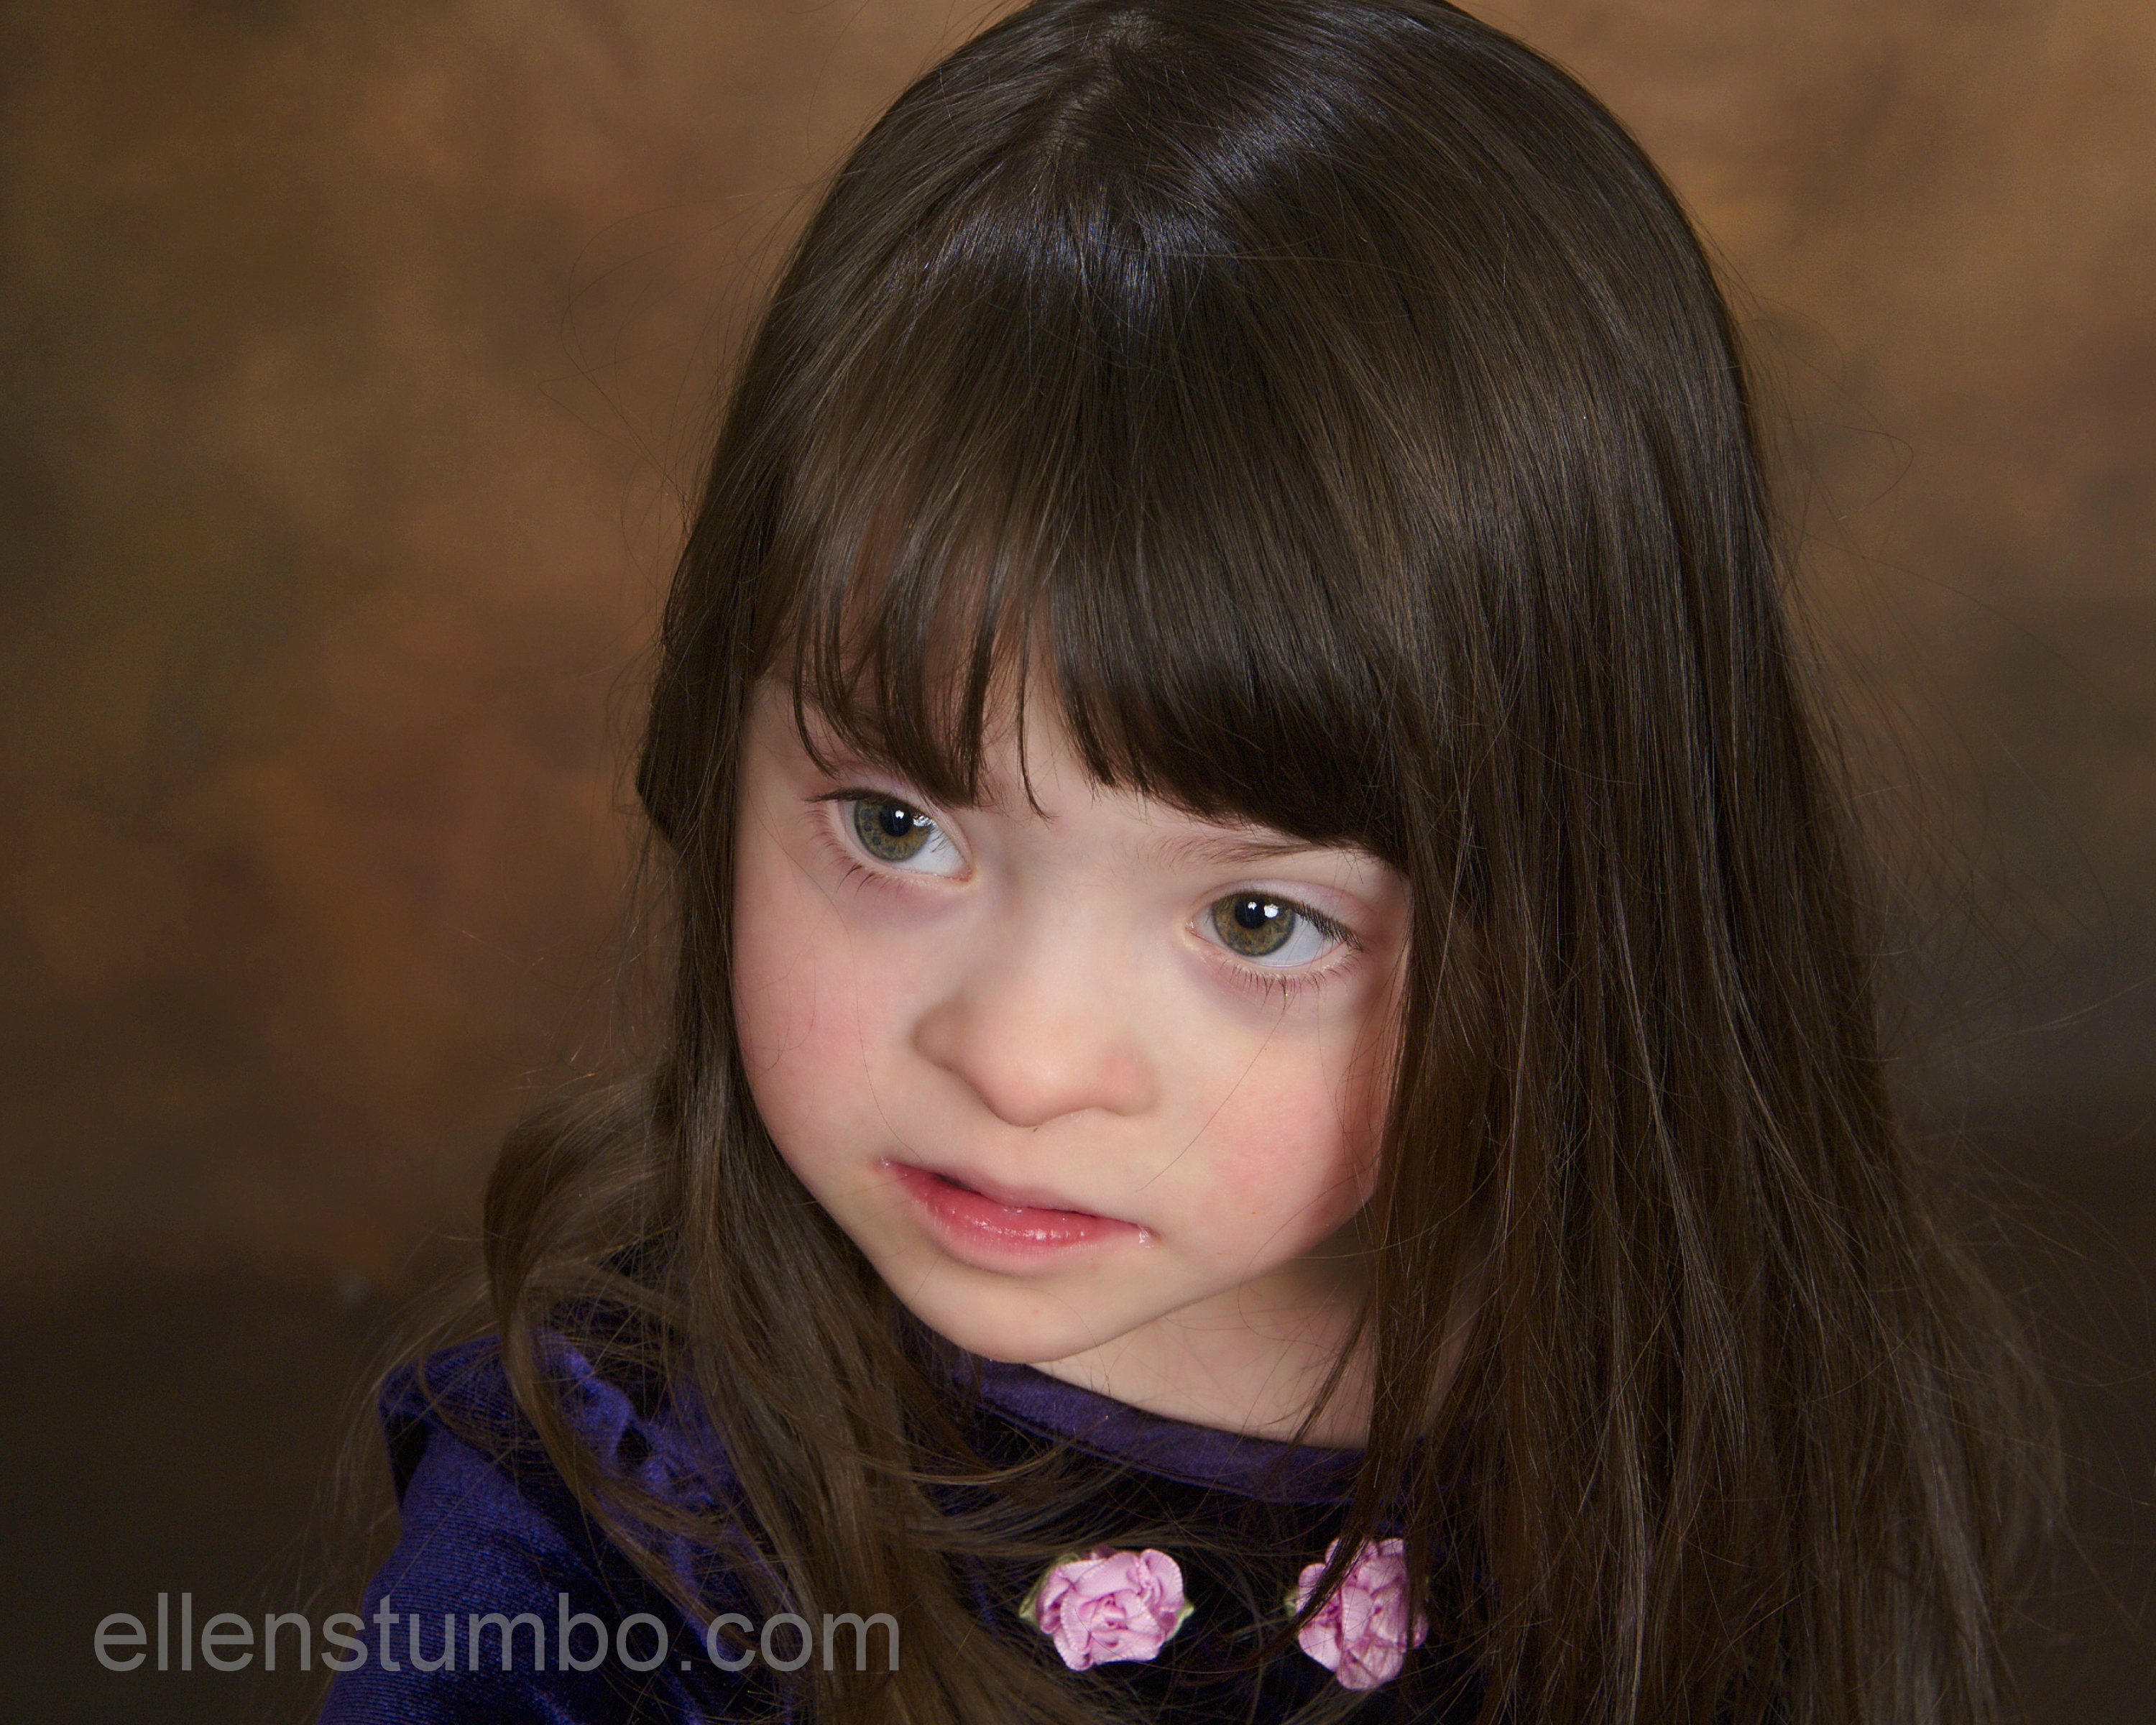 What to say or not to say when your friend's baby is diagnosed with Down syndrome